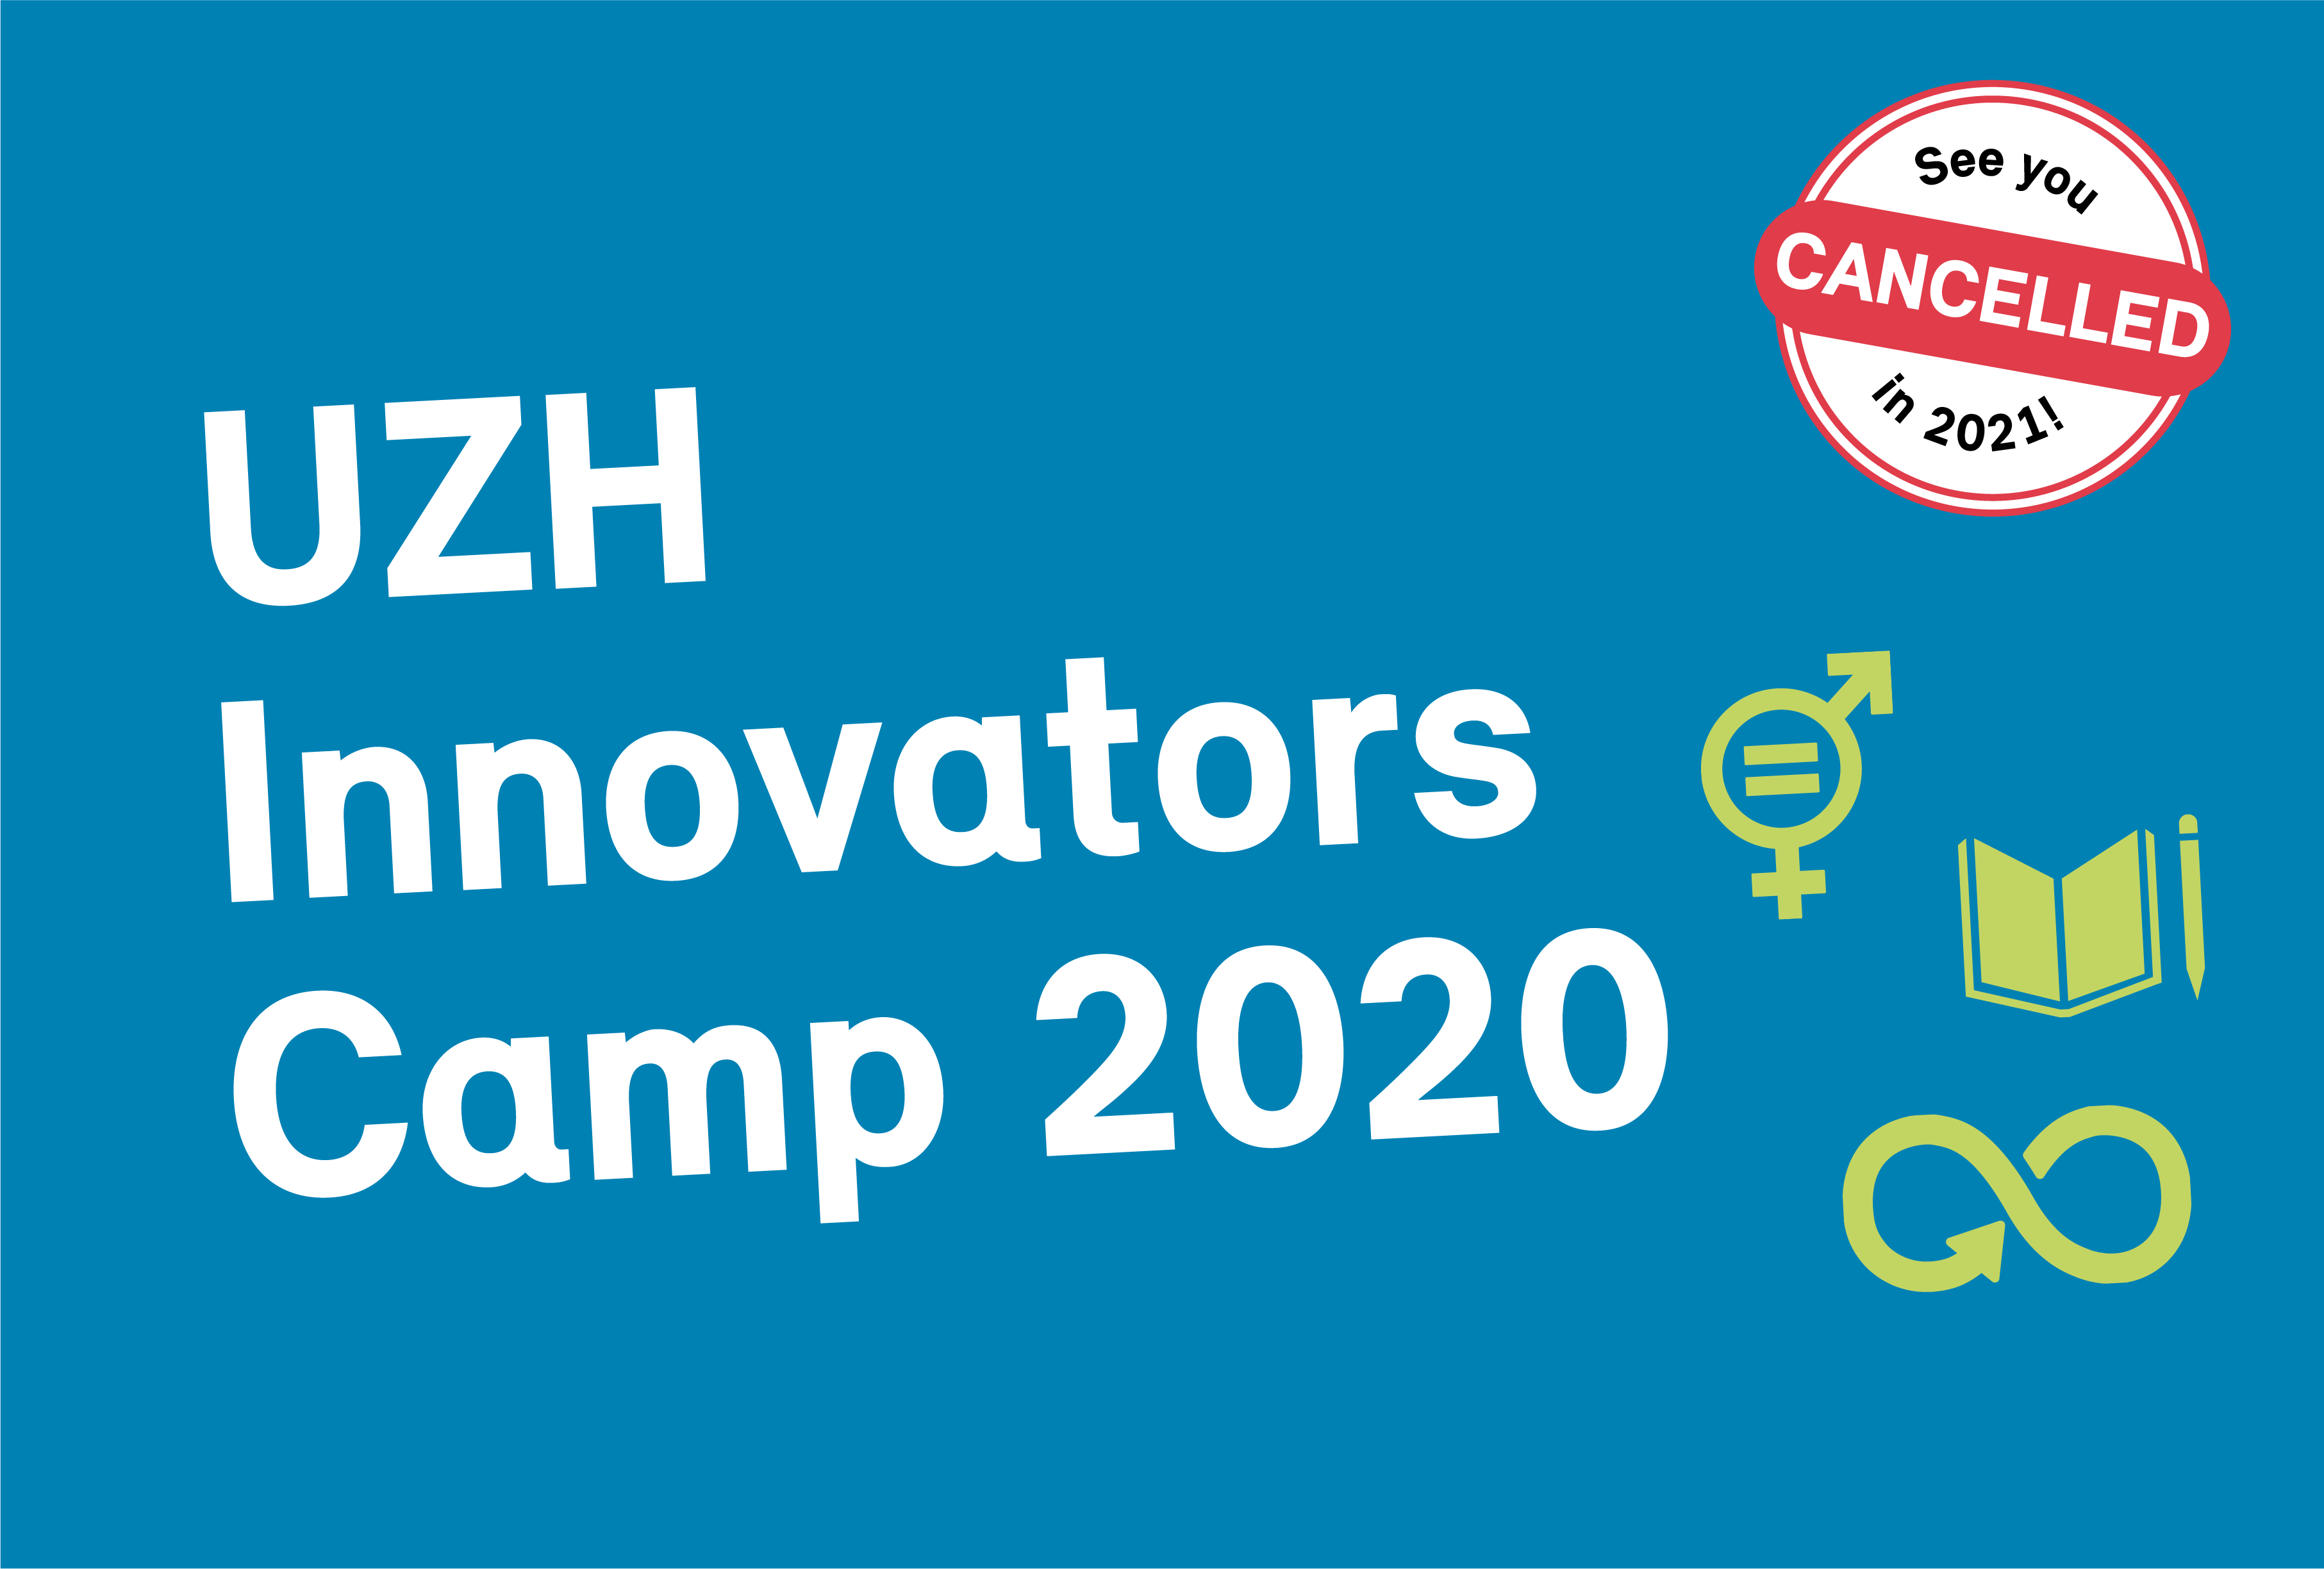 Innovators Camp 2020 cancelled